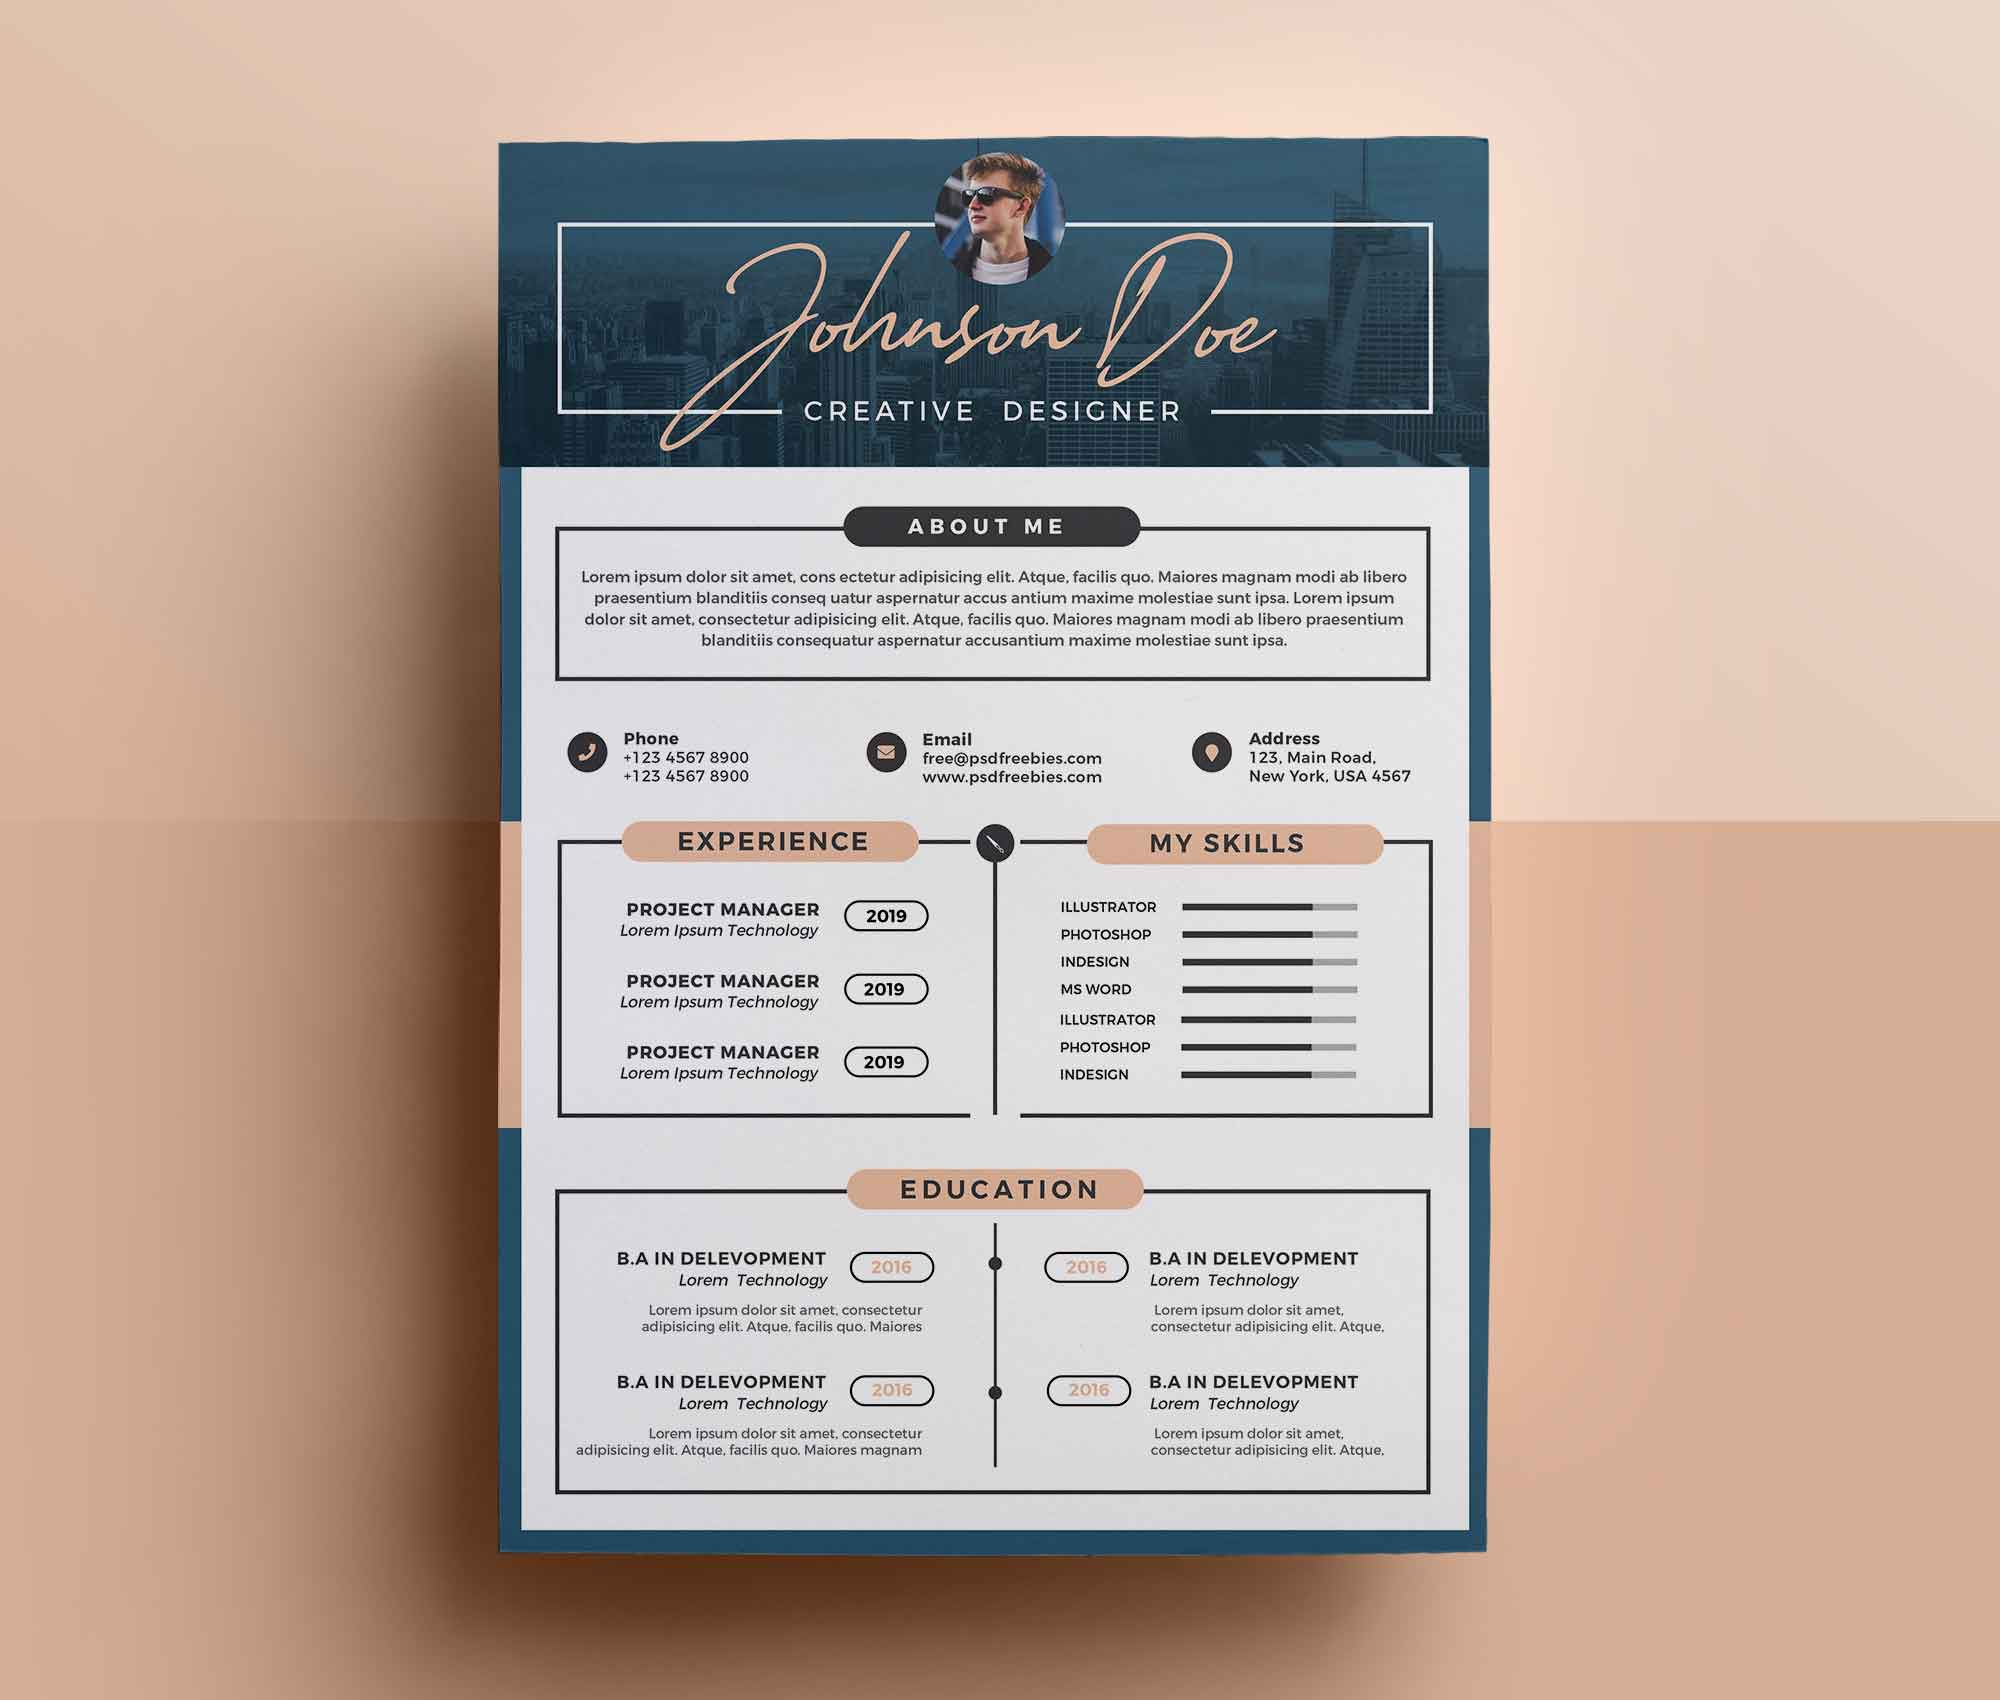 007 Imposing Psd Cv Template Free High Definition  2018 Vector Photo And File Download ArchitectFull